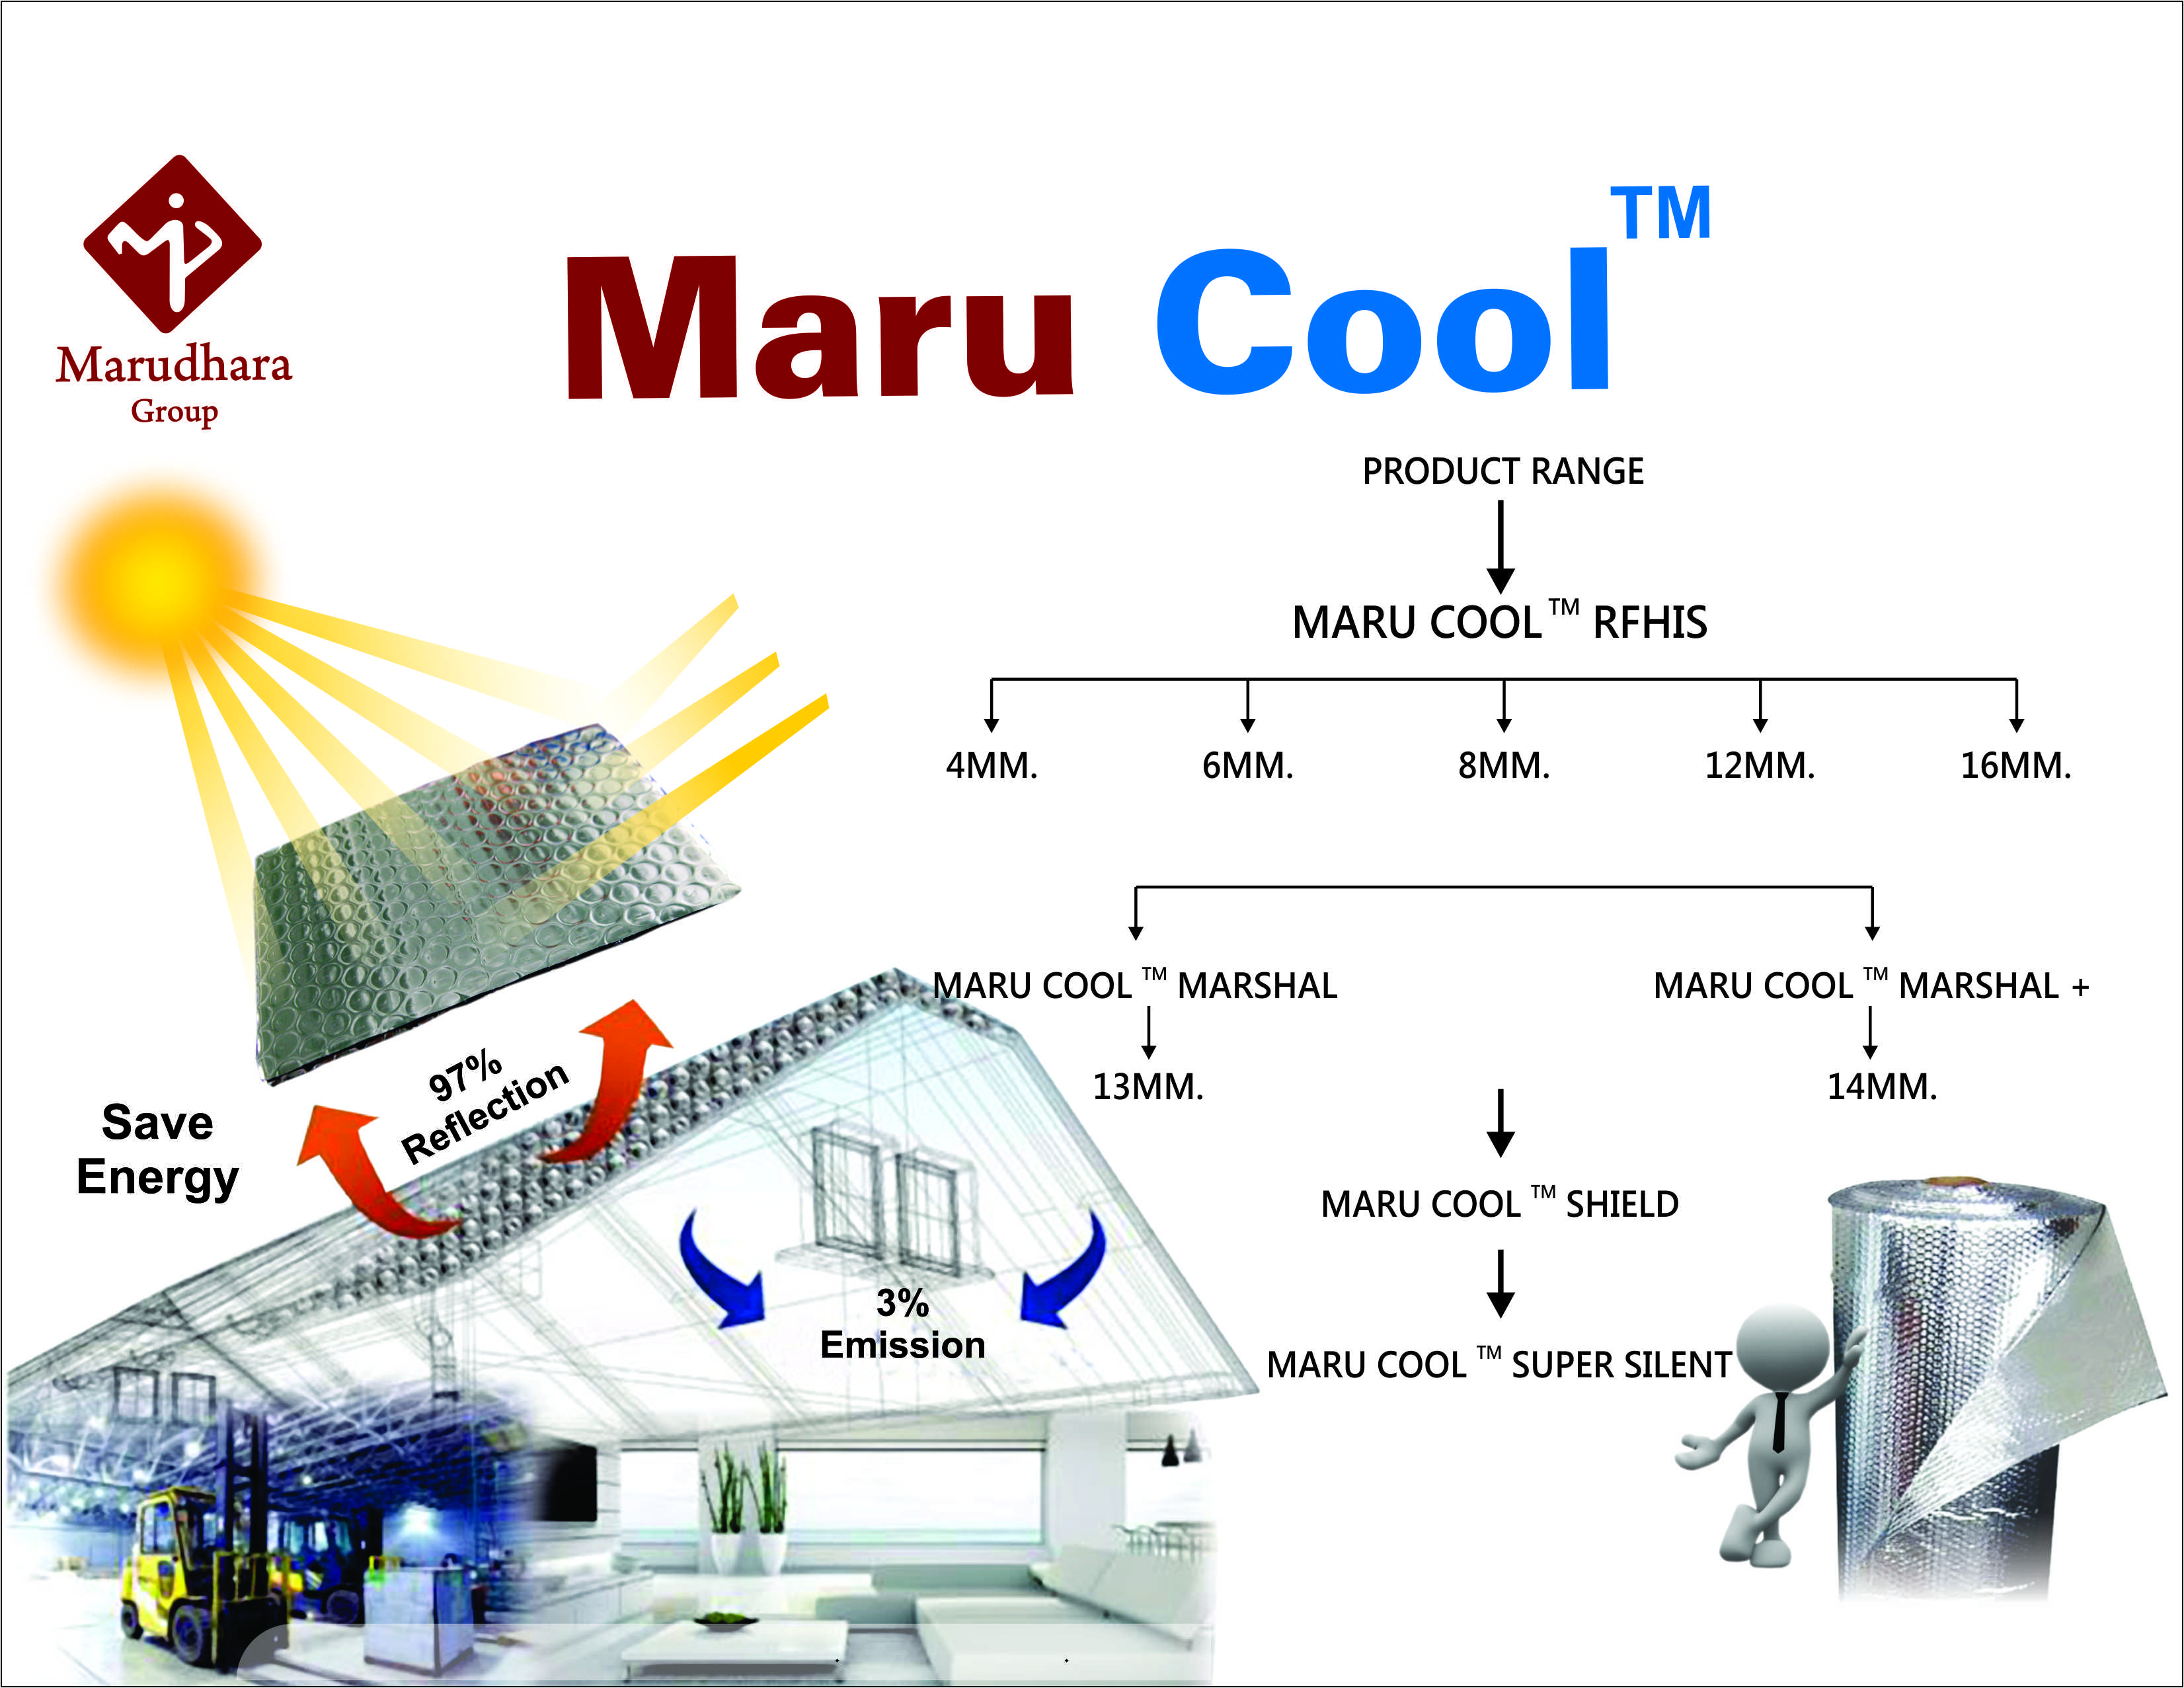 Marudhara Polypack Private Limited